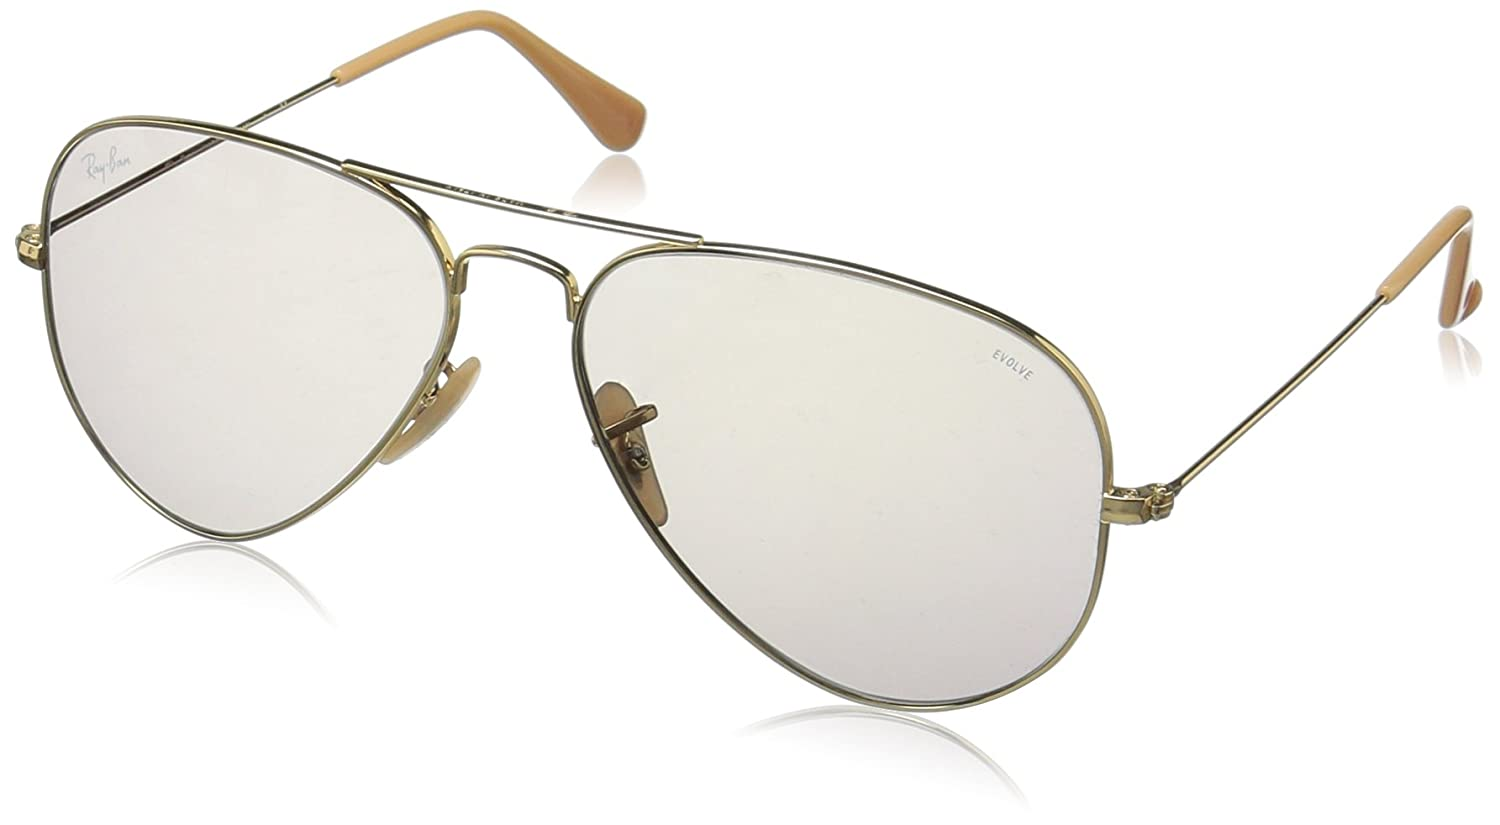 1d600033c94 Amazon.com  Ray-Ban Aviator Evolve RB3025-9064V8 Sunglasses Gold w ...